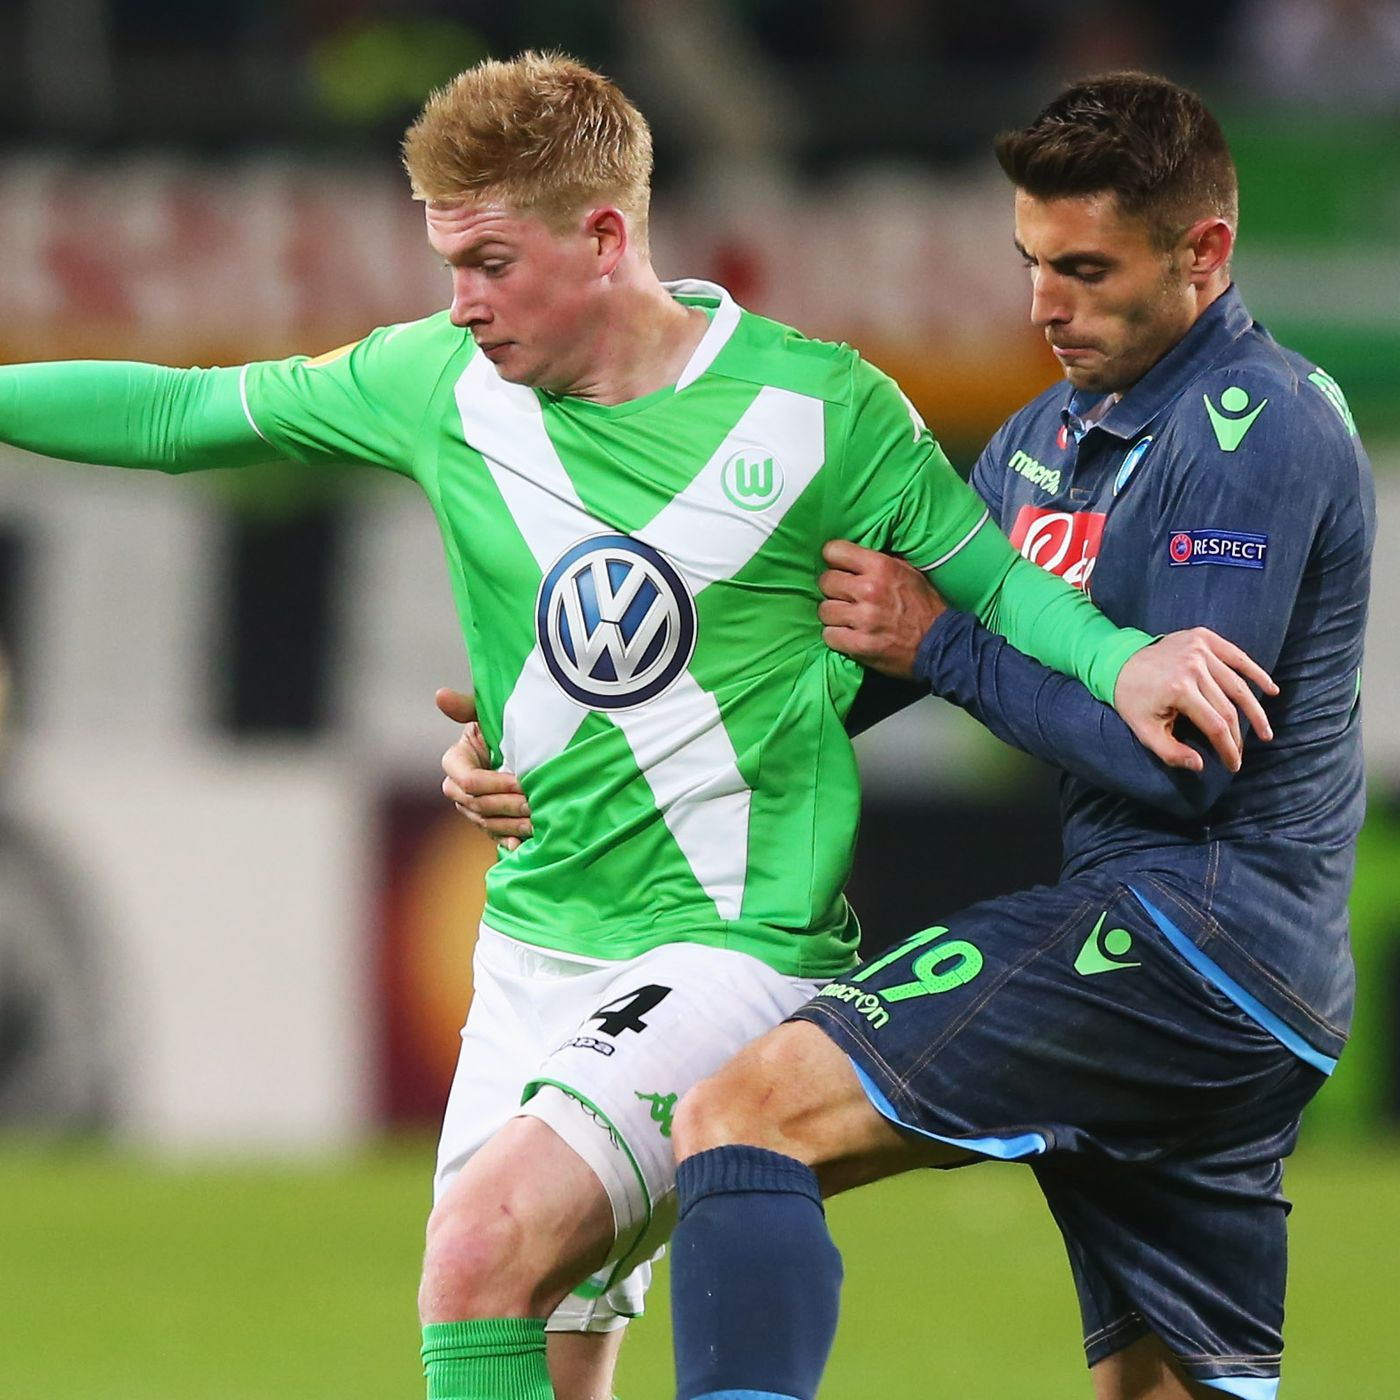 buy online c9bf1 2dc96 Kevin De Bruyne out for Wolfsburg against Napoli - The ...